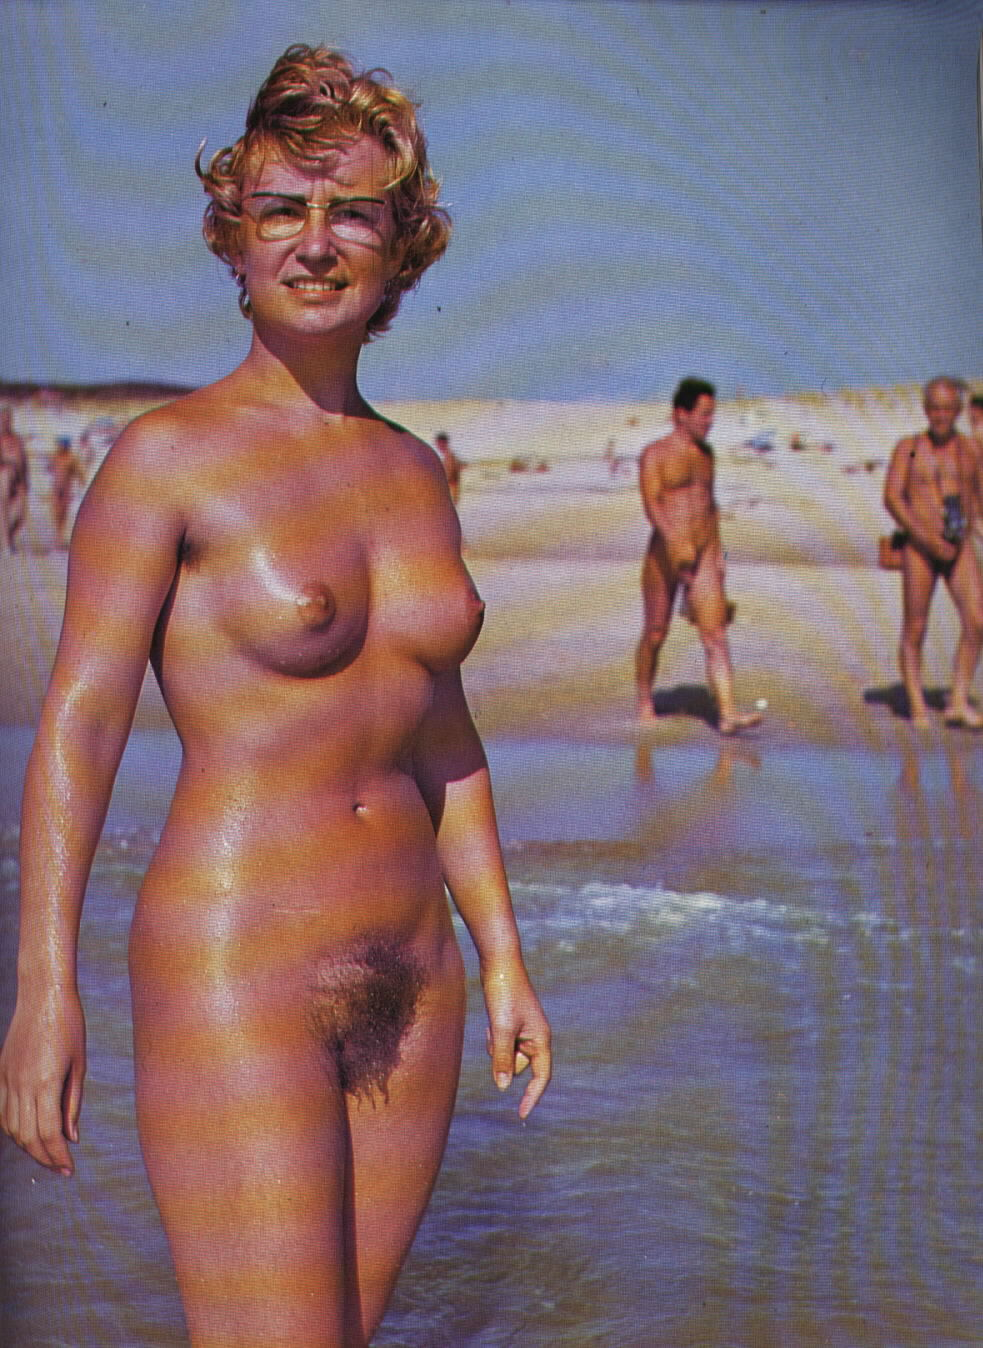 retro nudist women eden-27-detail2.jpg ...